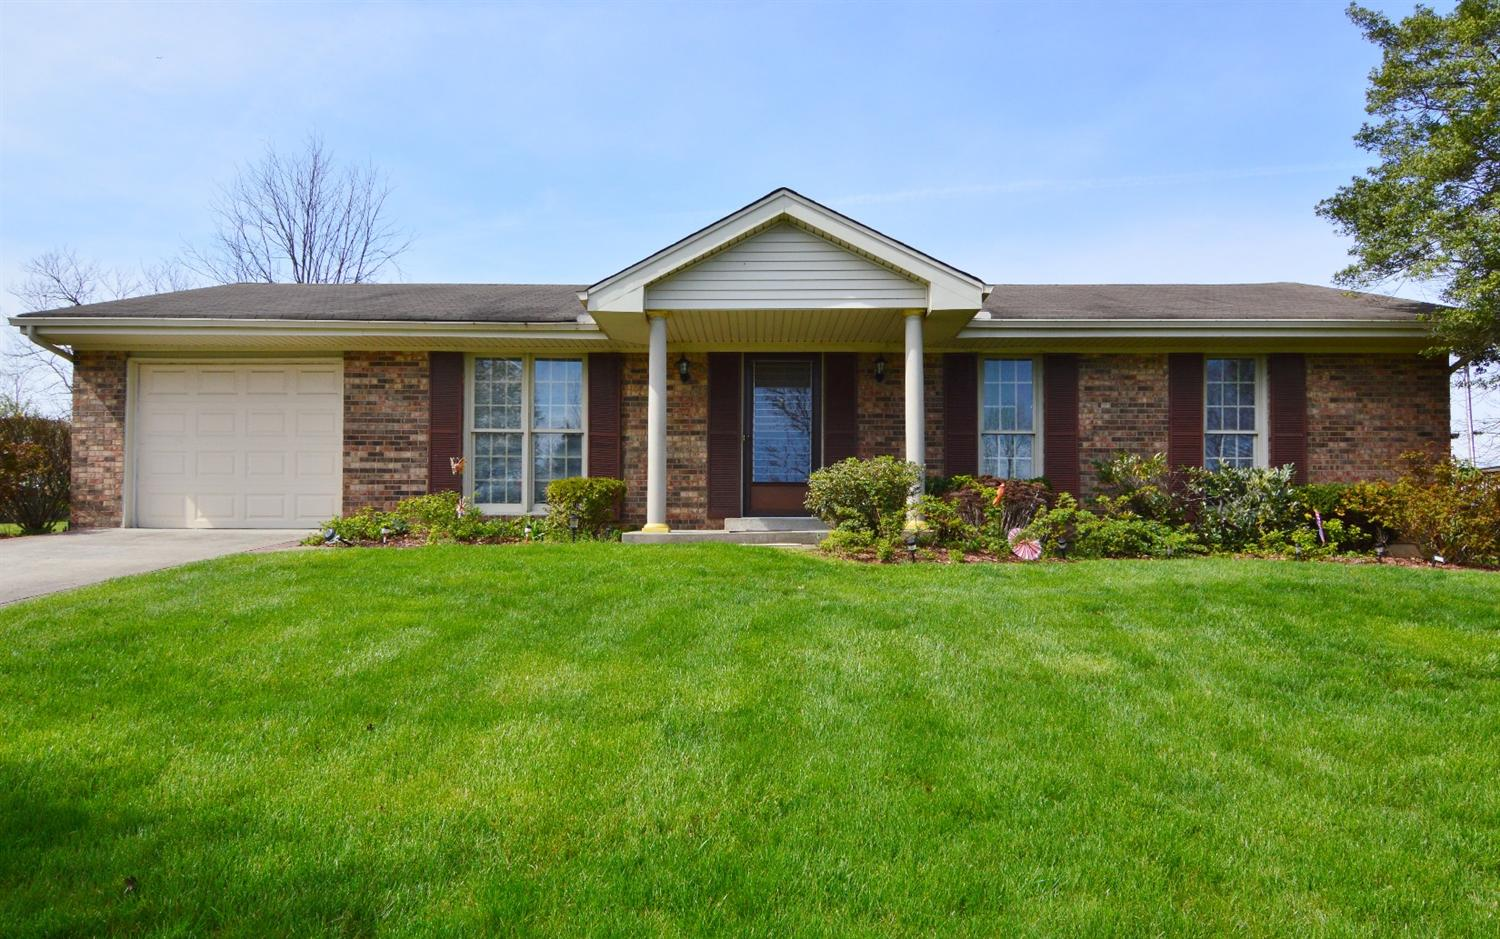 Photo 1 for 1029 Wedgewood Dr Independence, KY 41051